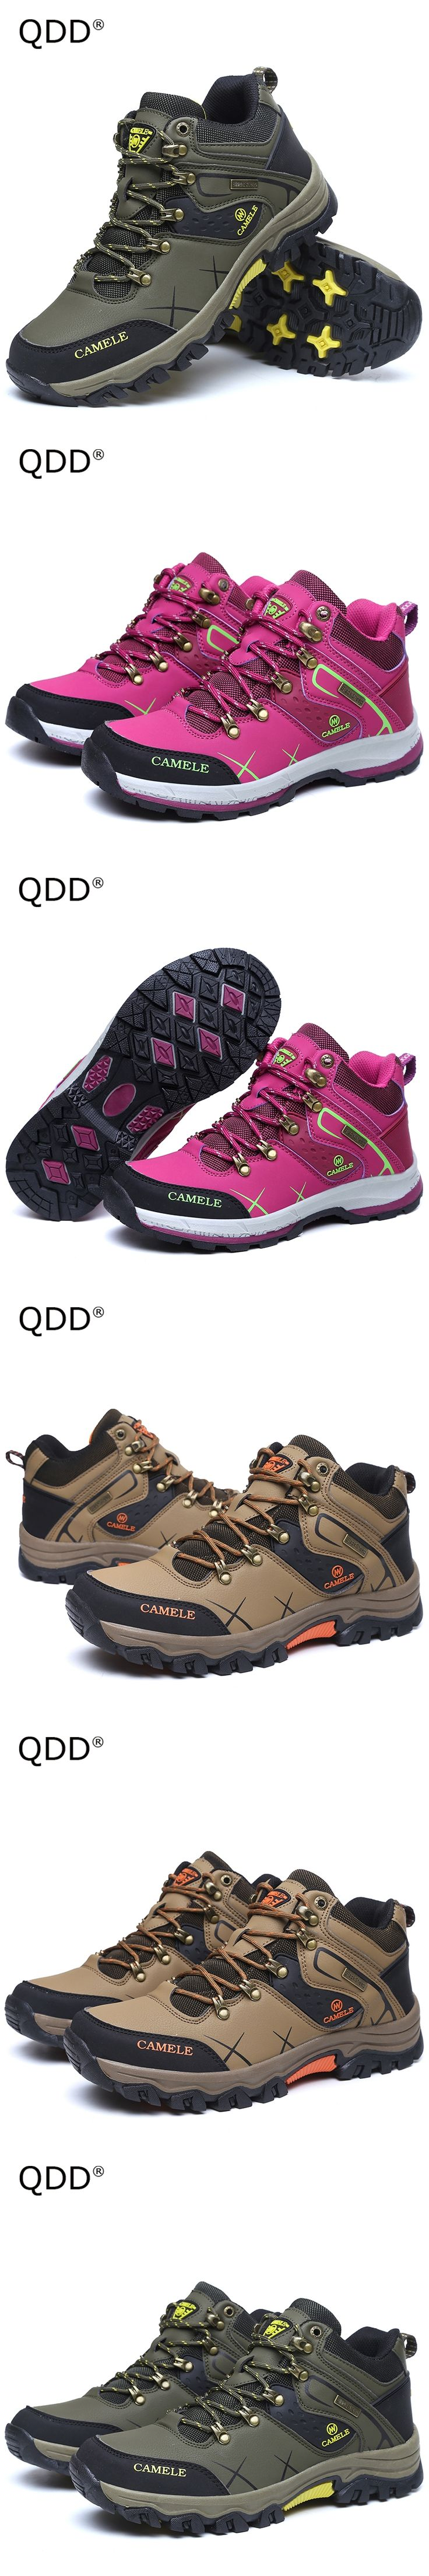 Trek Your Own Road No Following! Men Trekking Shoes High Quality Wearable Waterproof Outdoor Trekking Shoes For Man and Woman.